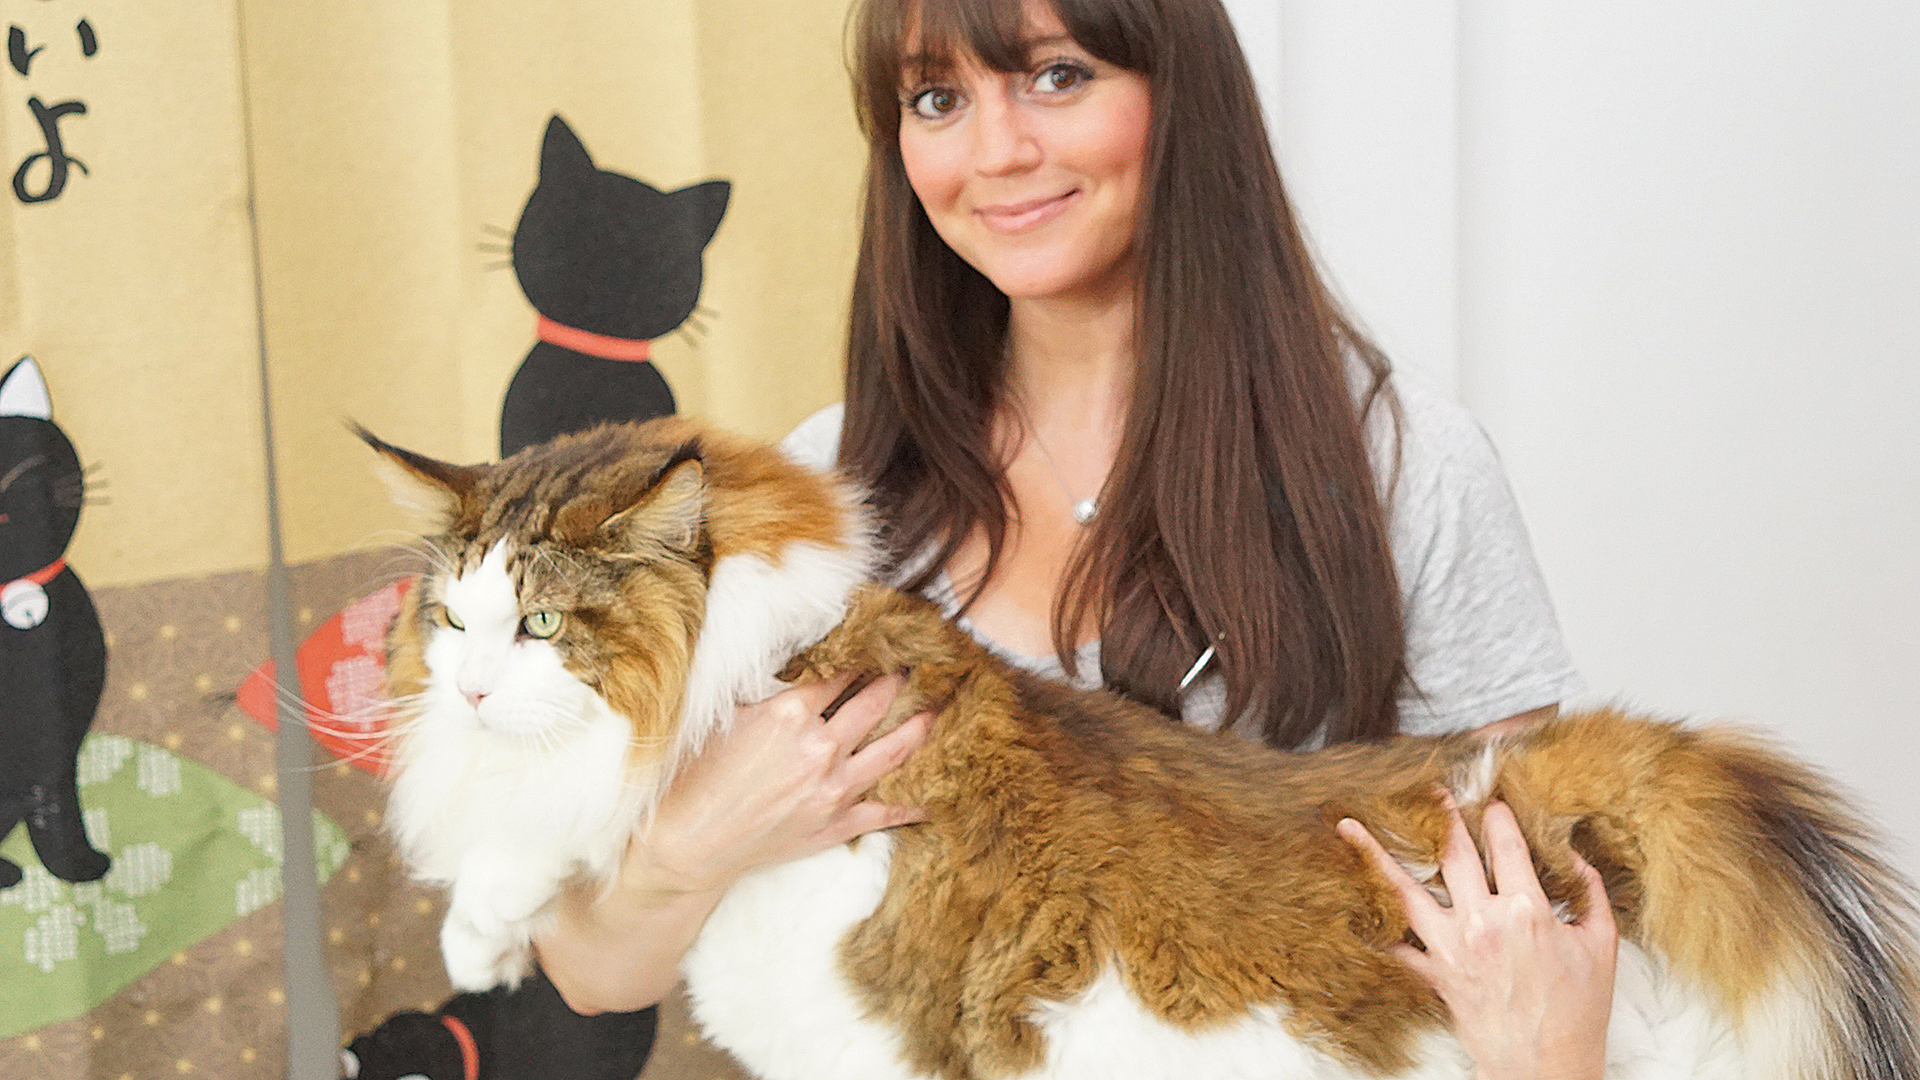 samson the cat billed as largest feline in new york at pounds - Biggest Cat In The World Guinness 2014